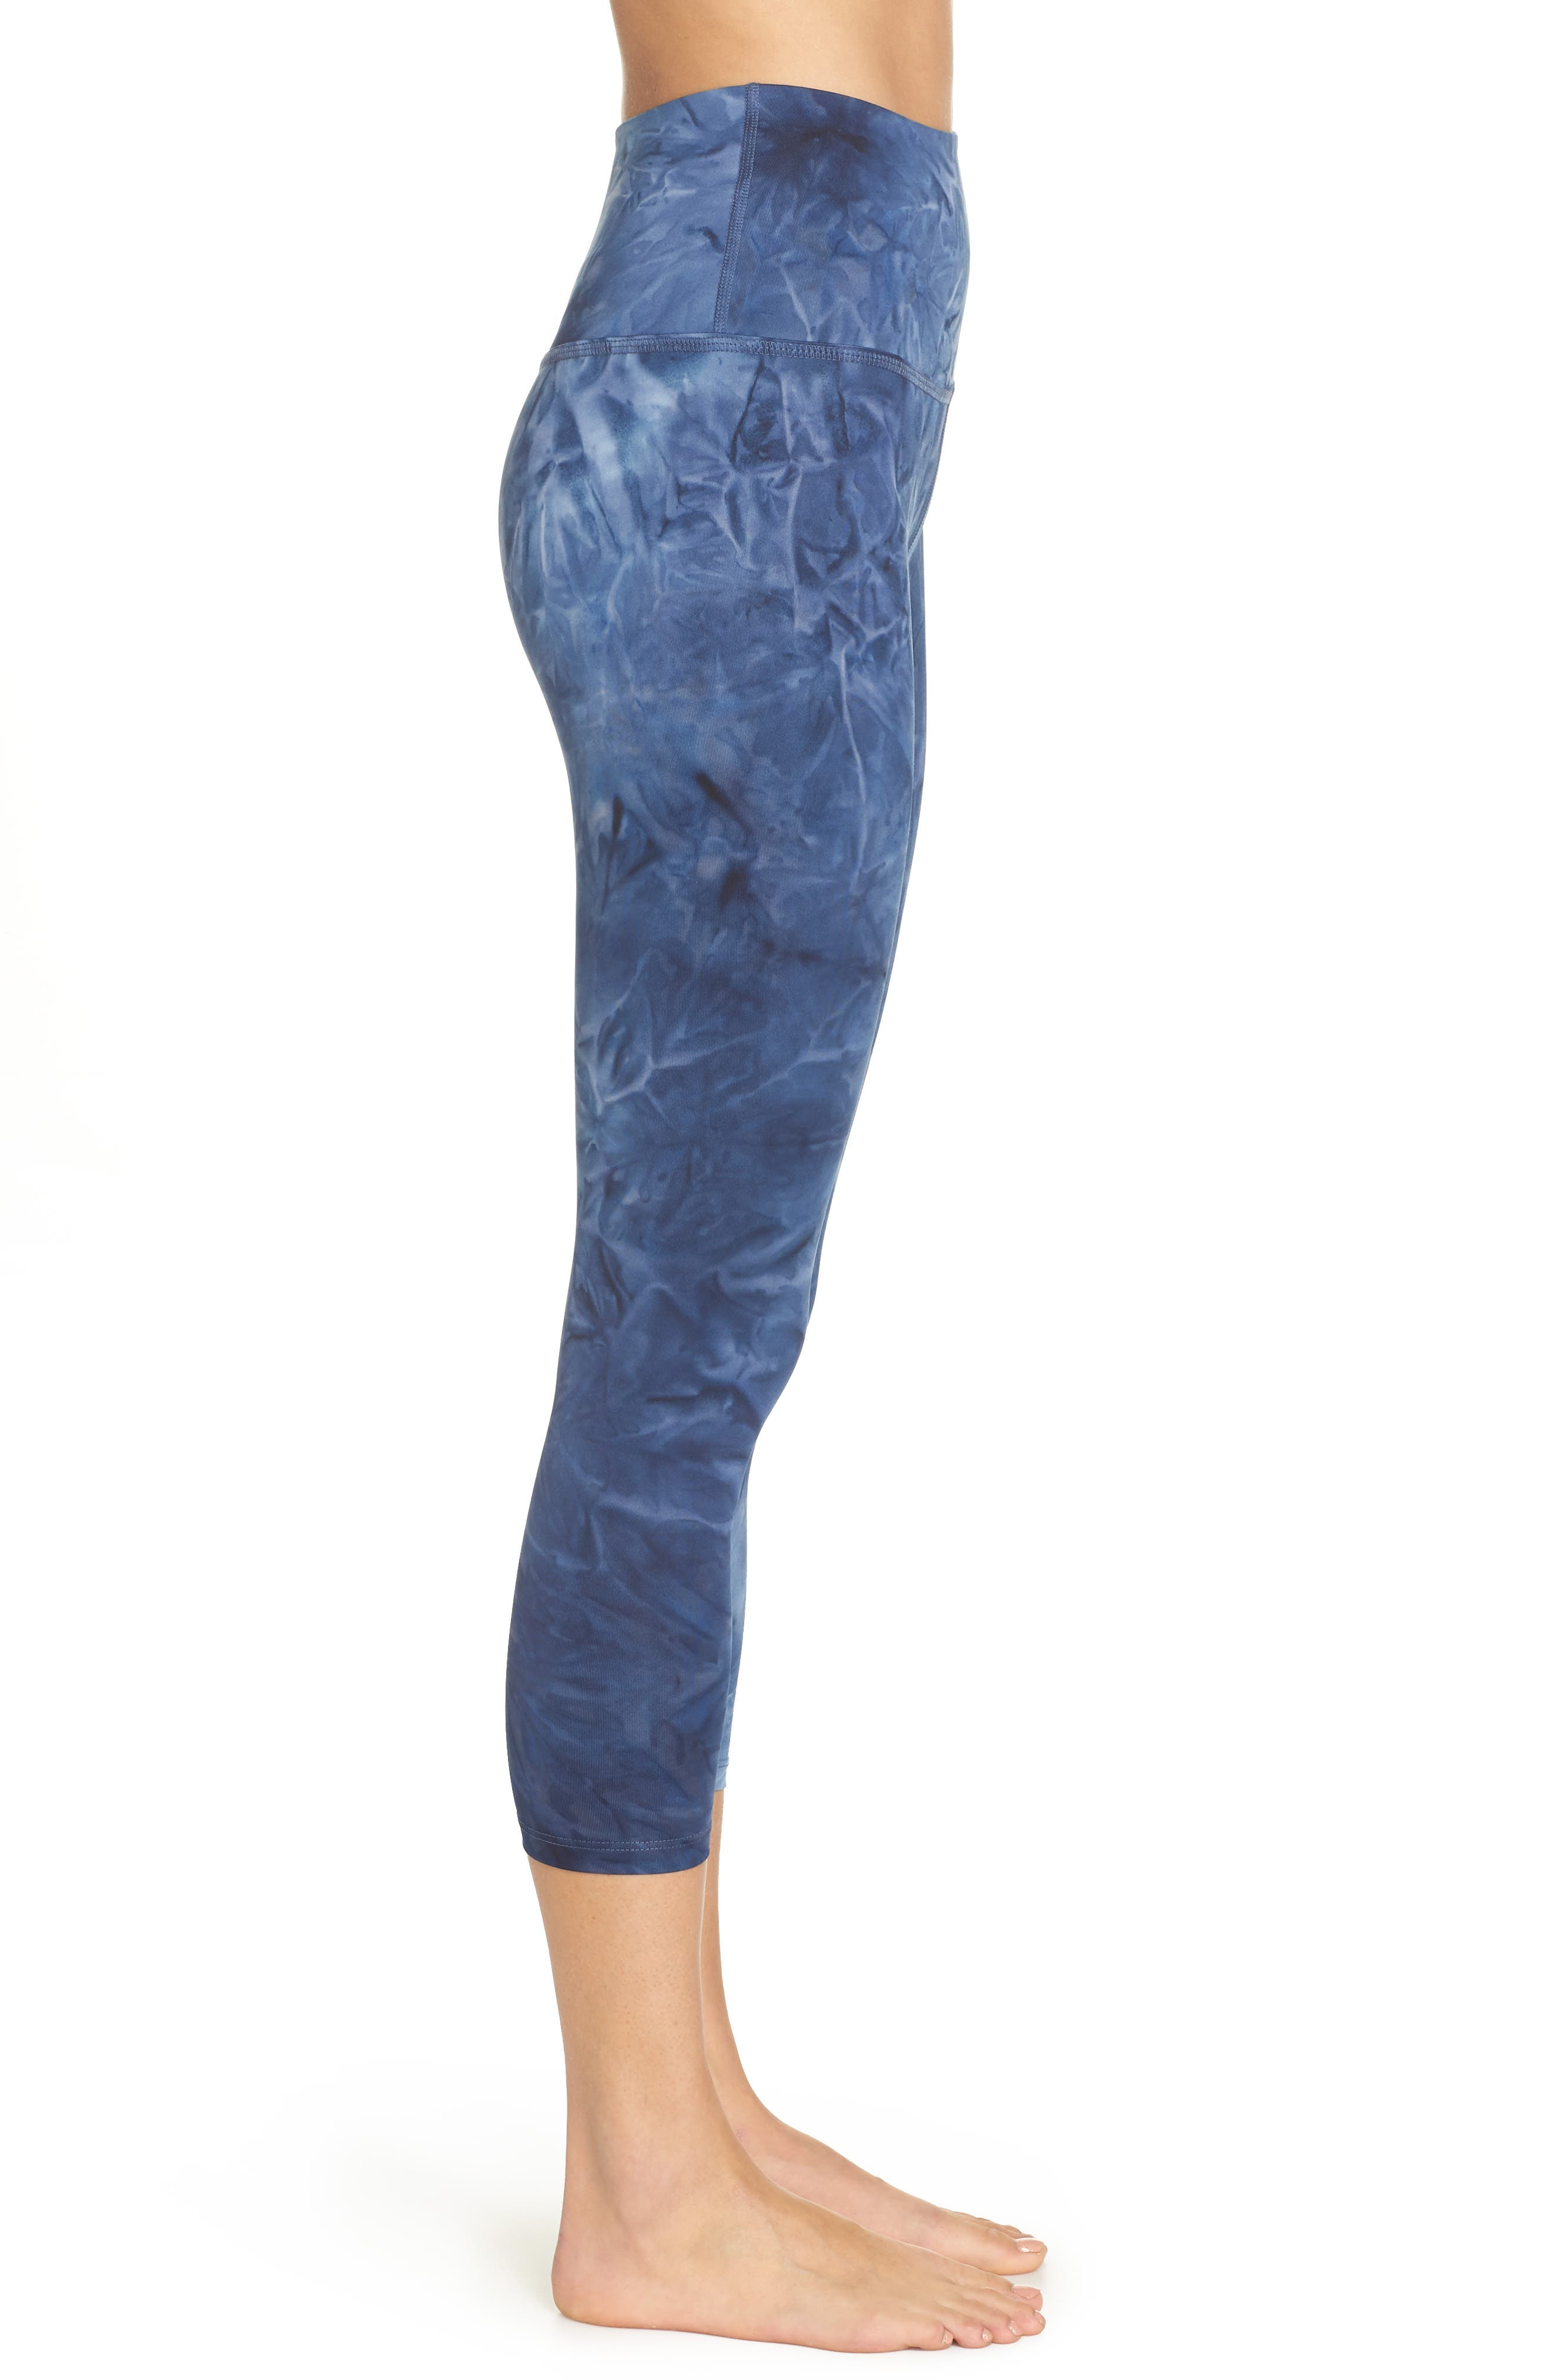 Smokeshow High Waist Leggings,                             Alternate thumbnail 3, color,                             461